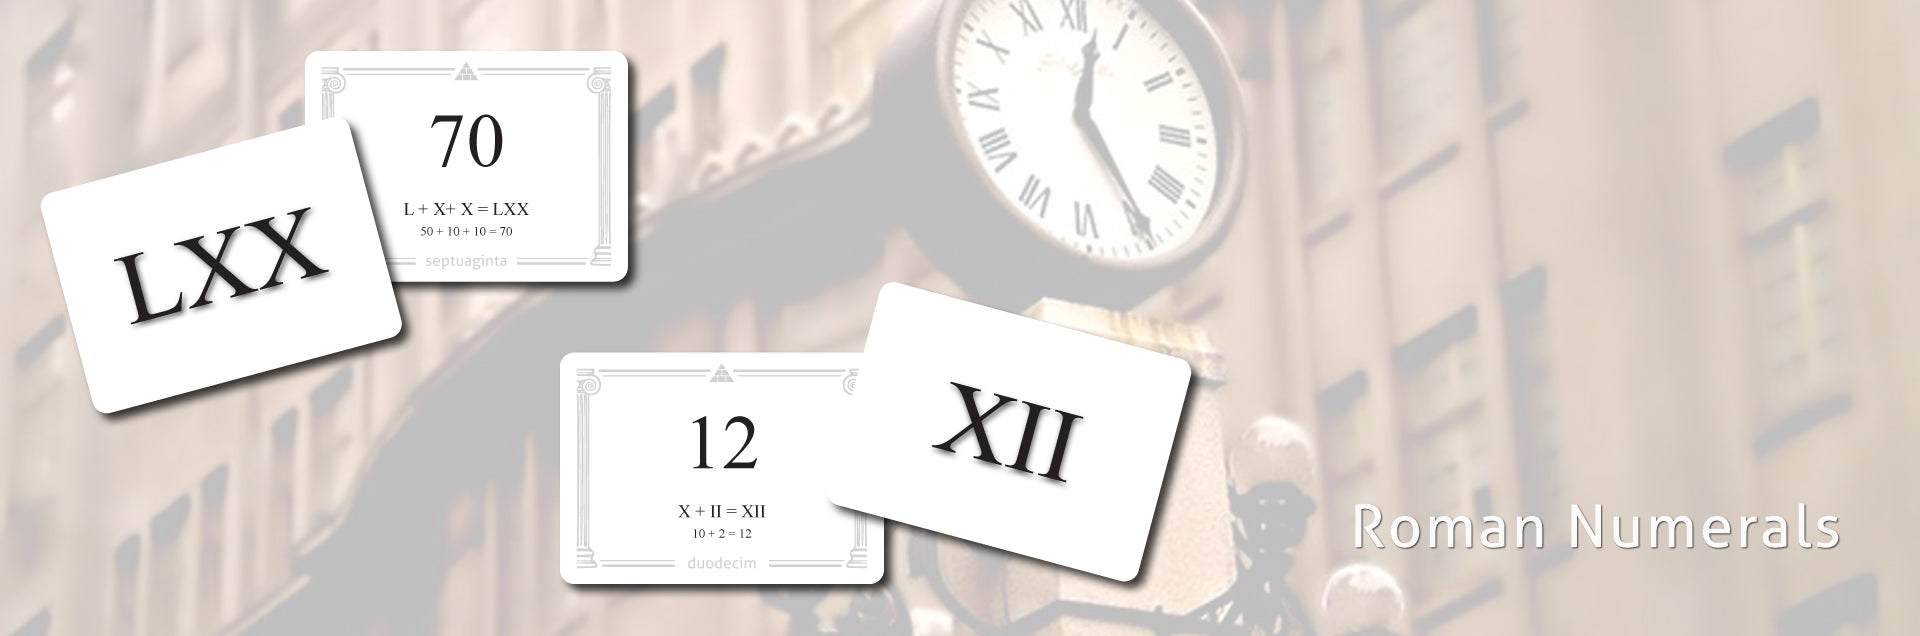 Roman Numeral flashcards